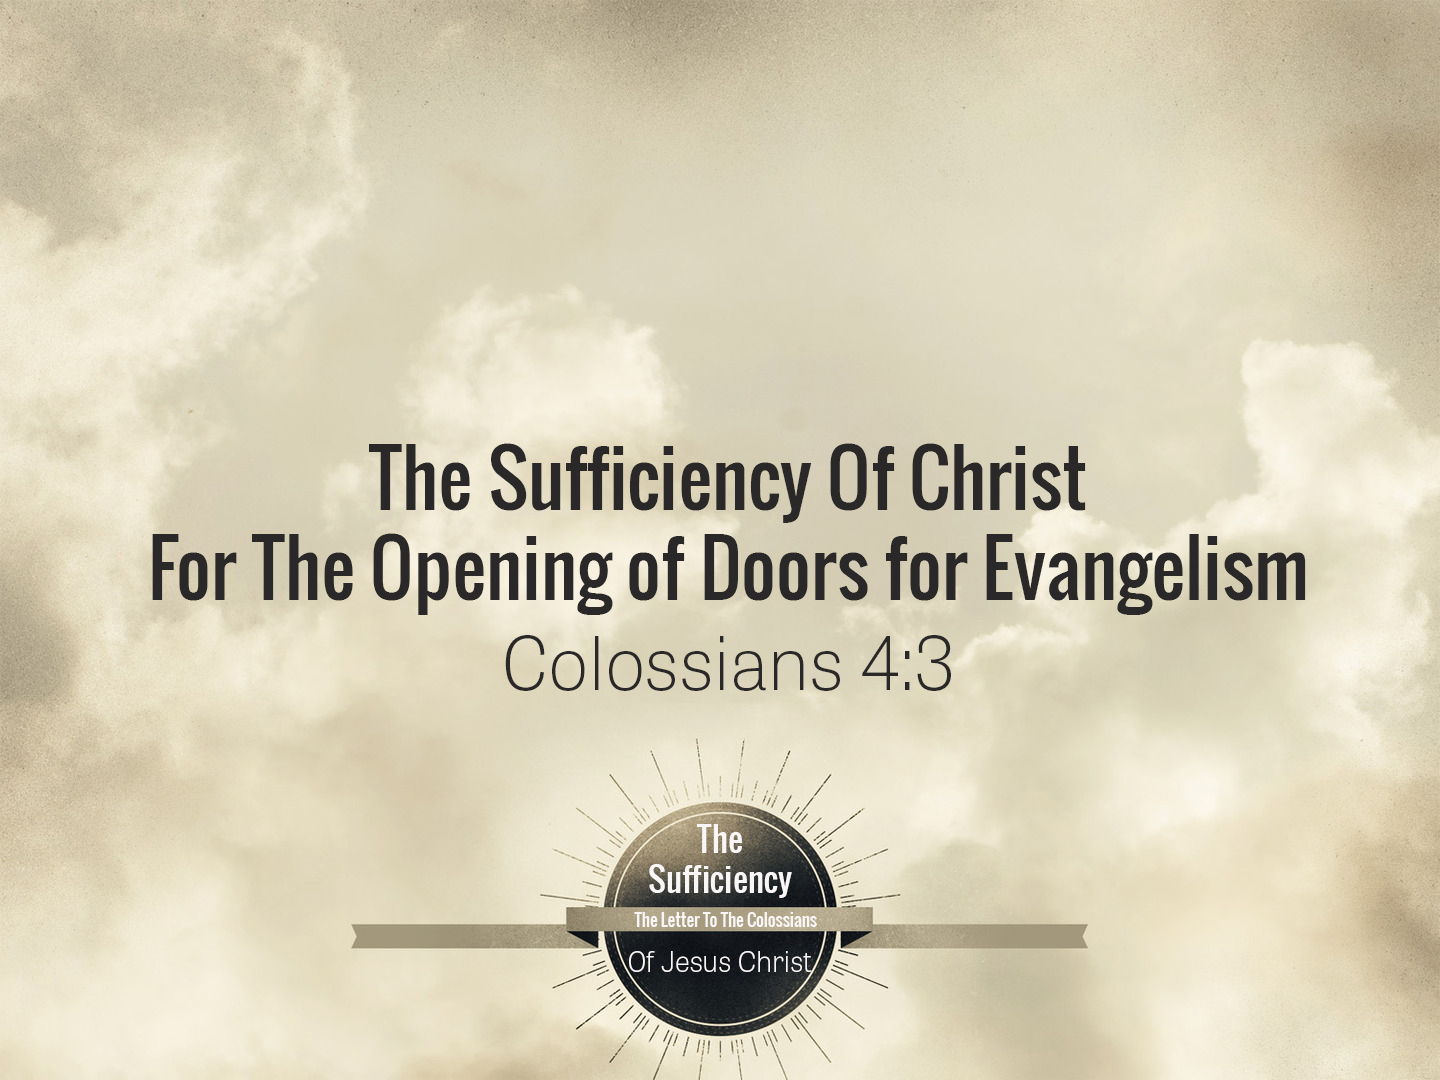 You are currently viewing Colossians 4v3 The Sufficiency Of Christ For The Opening of Doors for Evangelism